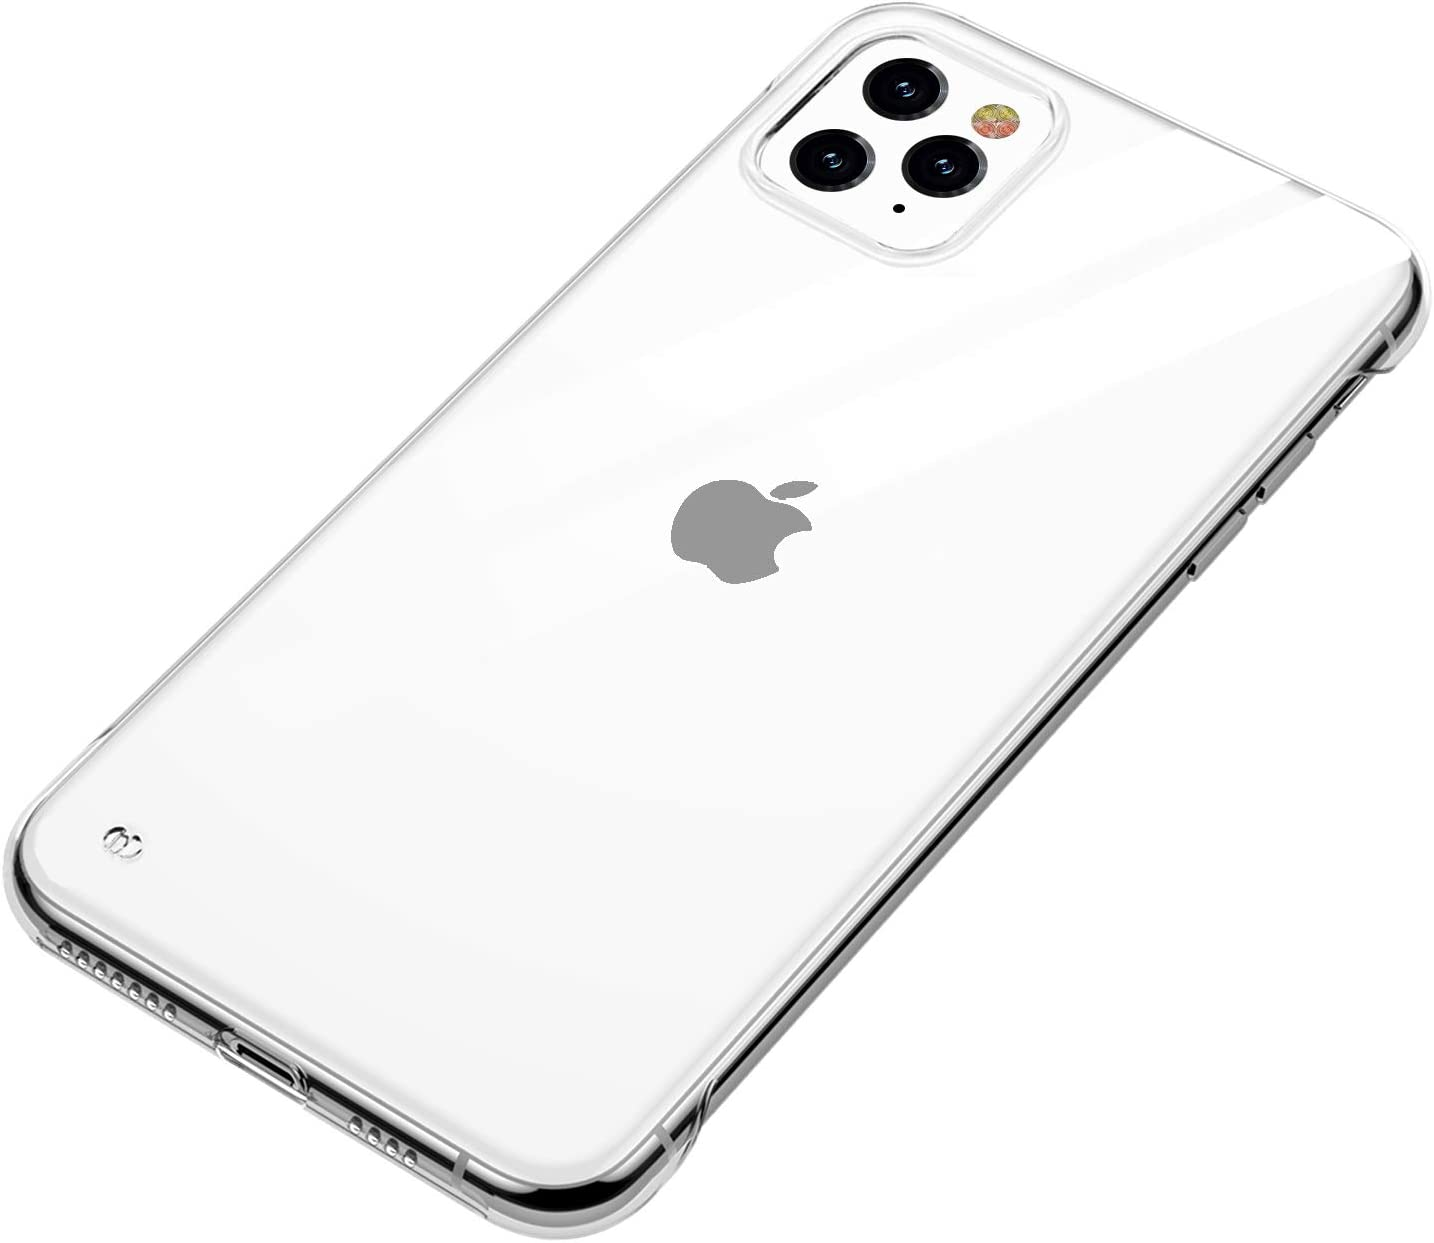 ANHONG Ultra-Thin iPhone 11 Pro Max Clear Case, Slim Fit Hard Plastic Frameless Cover Case Compatible with iPhone 11 Pro Max 6.5 Inch (2019) (Clear)